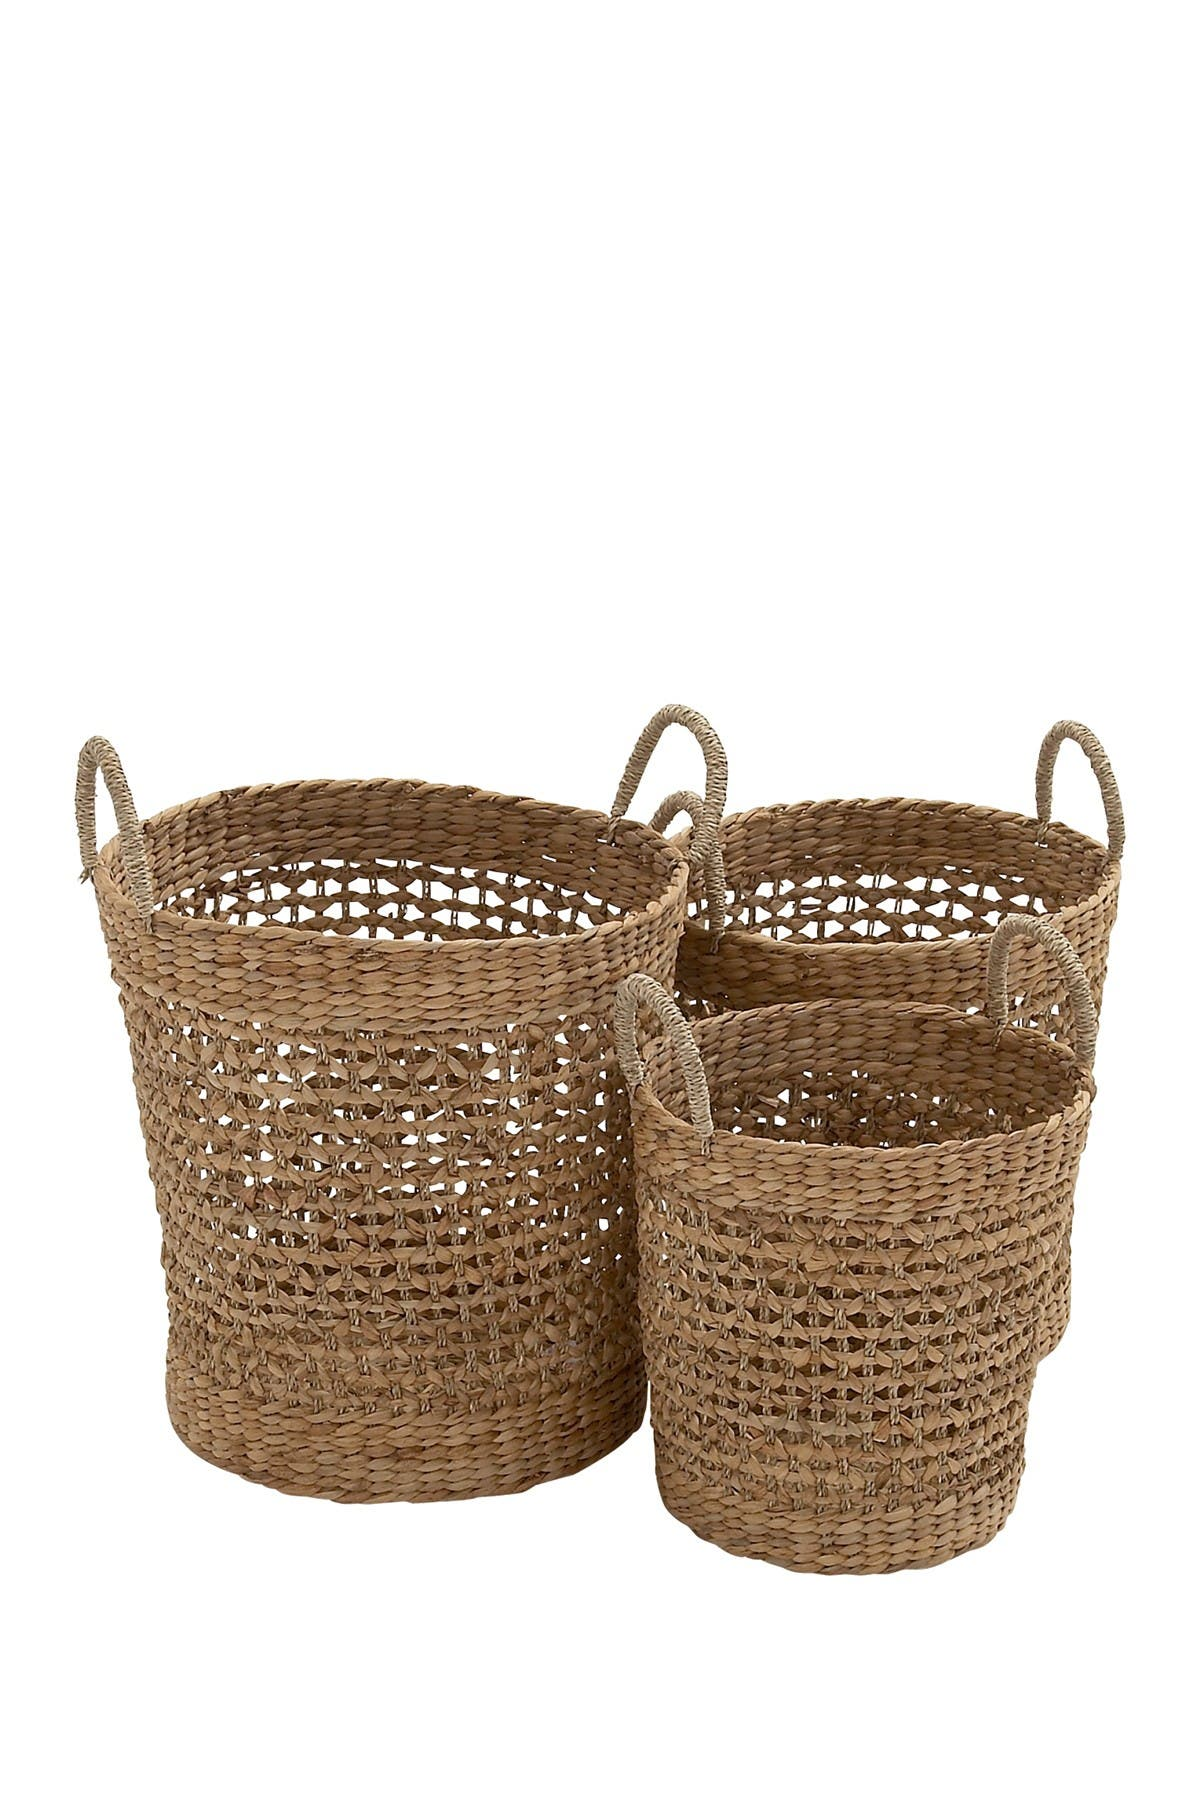 Image of Willow Row Round Seagrass Baskets - Set of 3